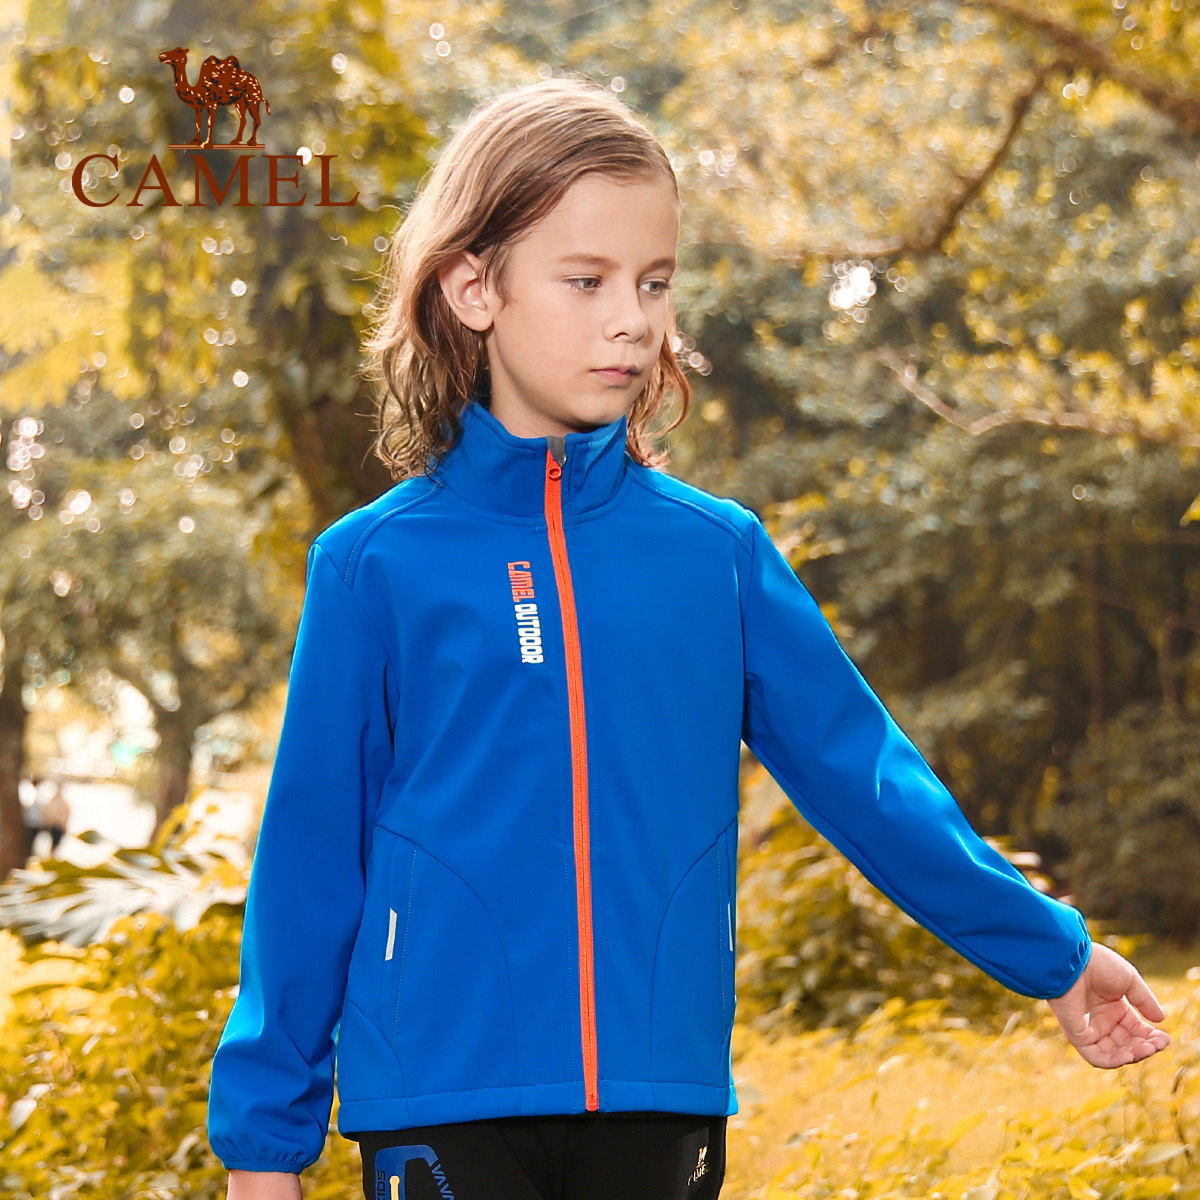 CAMEL camel autumn and winter children's soft shell clothes anti-splashing anti-static sportswear boys and girls warm coat